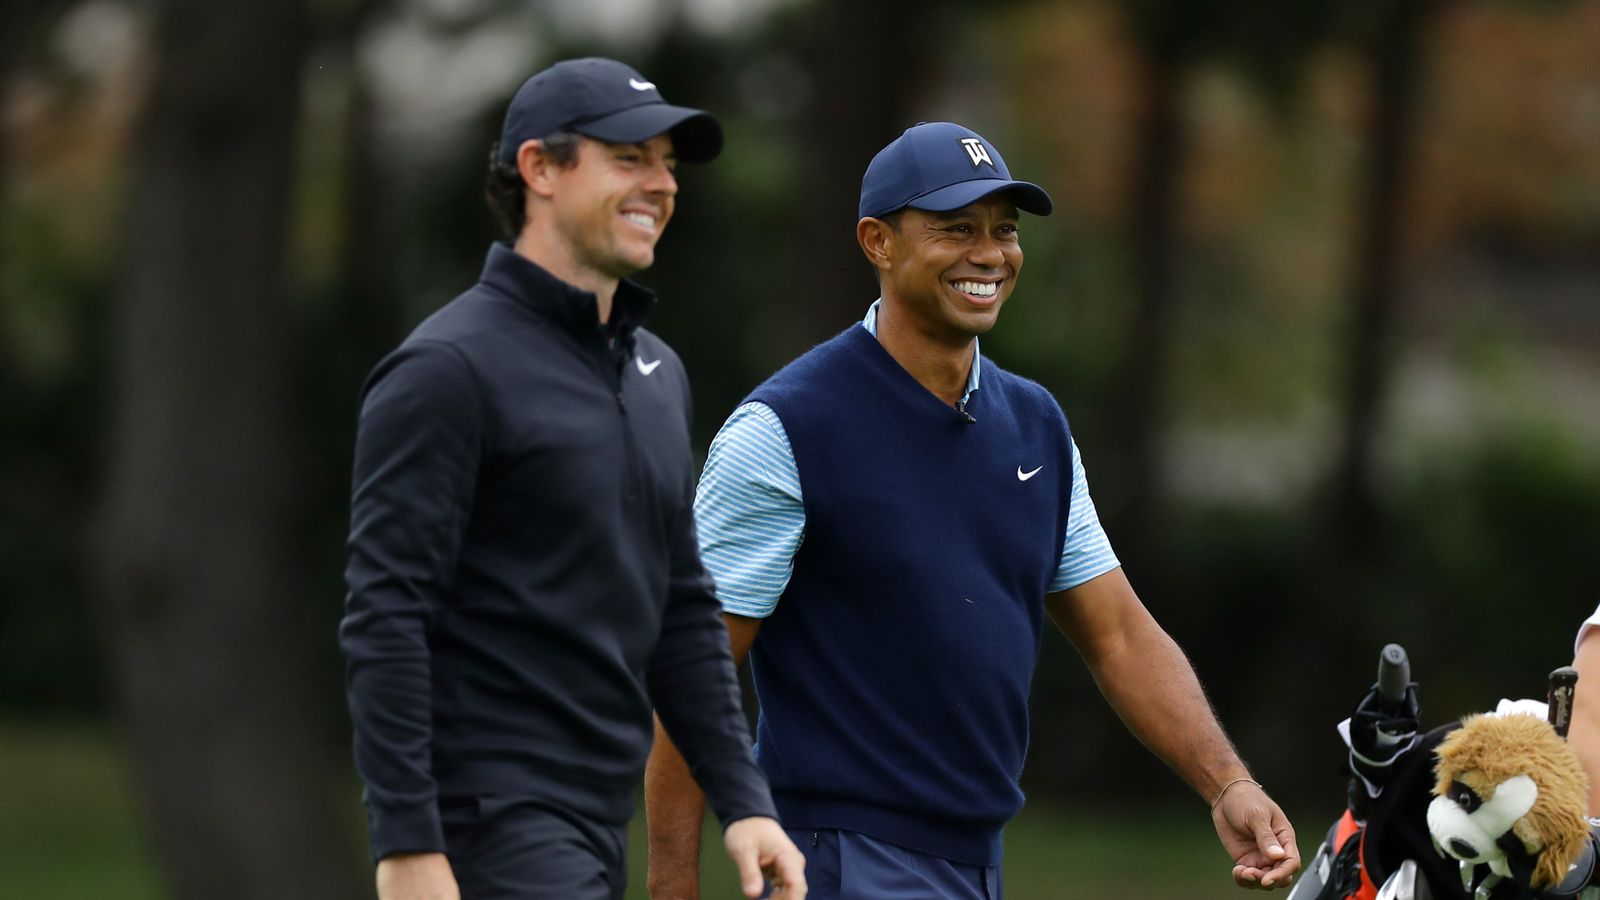 The Memorial: Tiger Woods grouped with Rory McIlroy, Brooks Koepka - Sky Sports